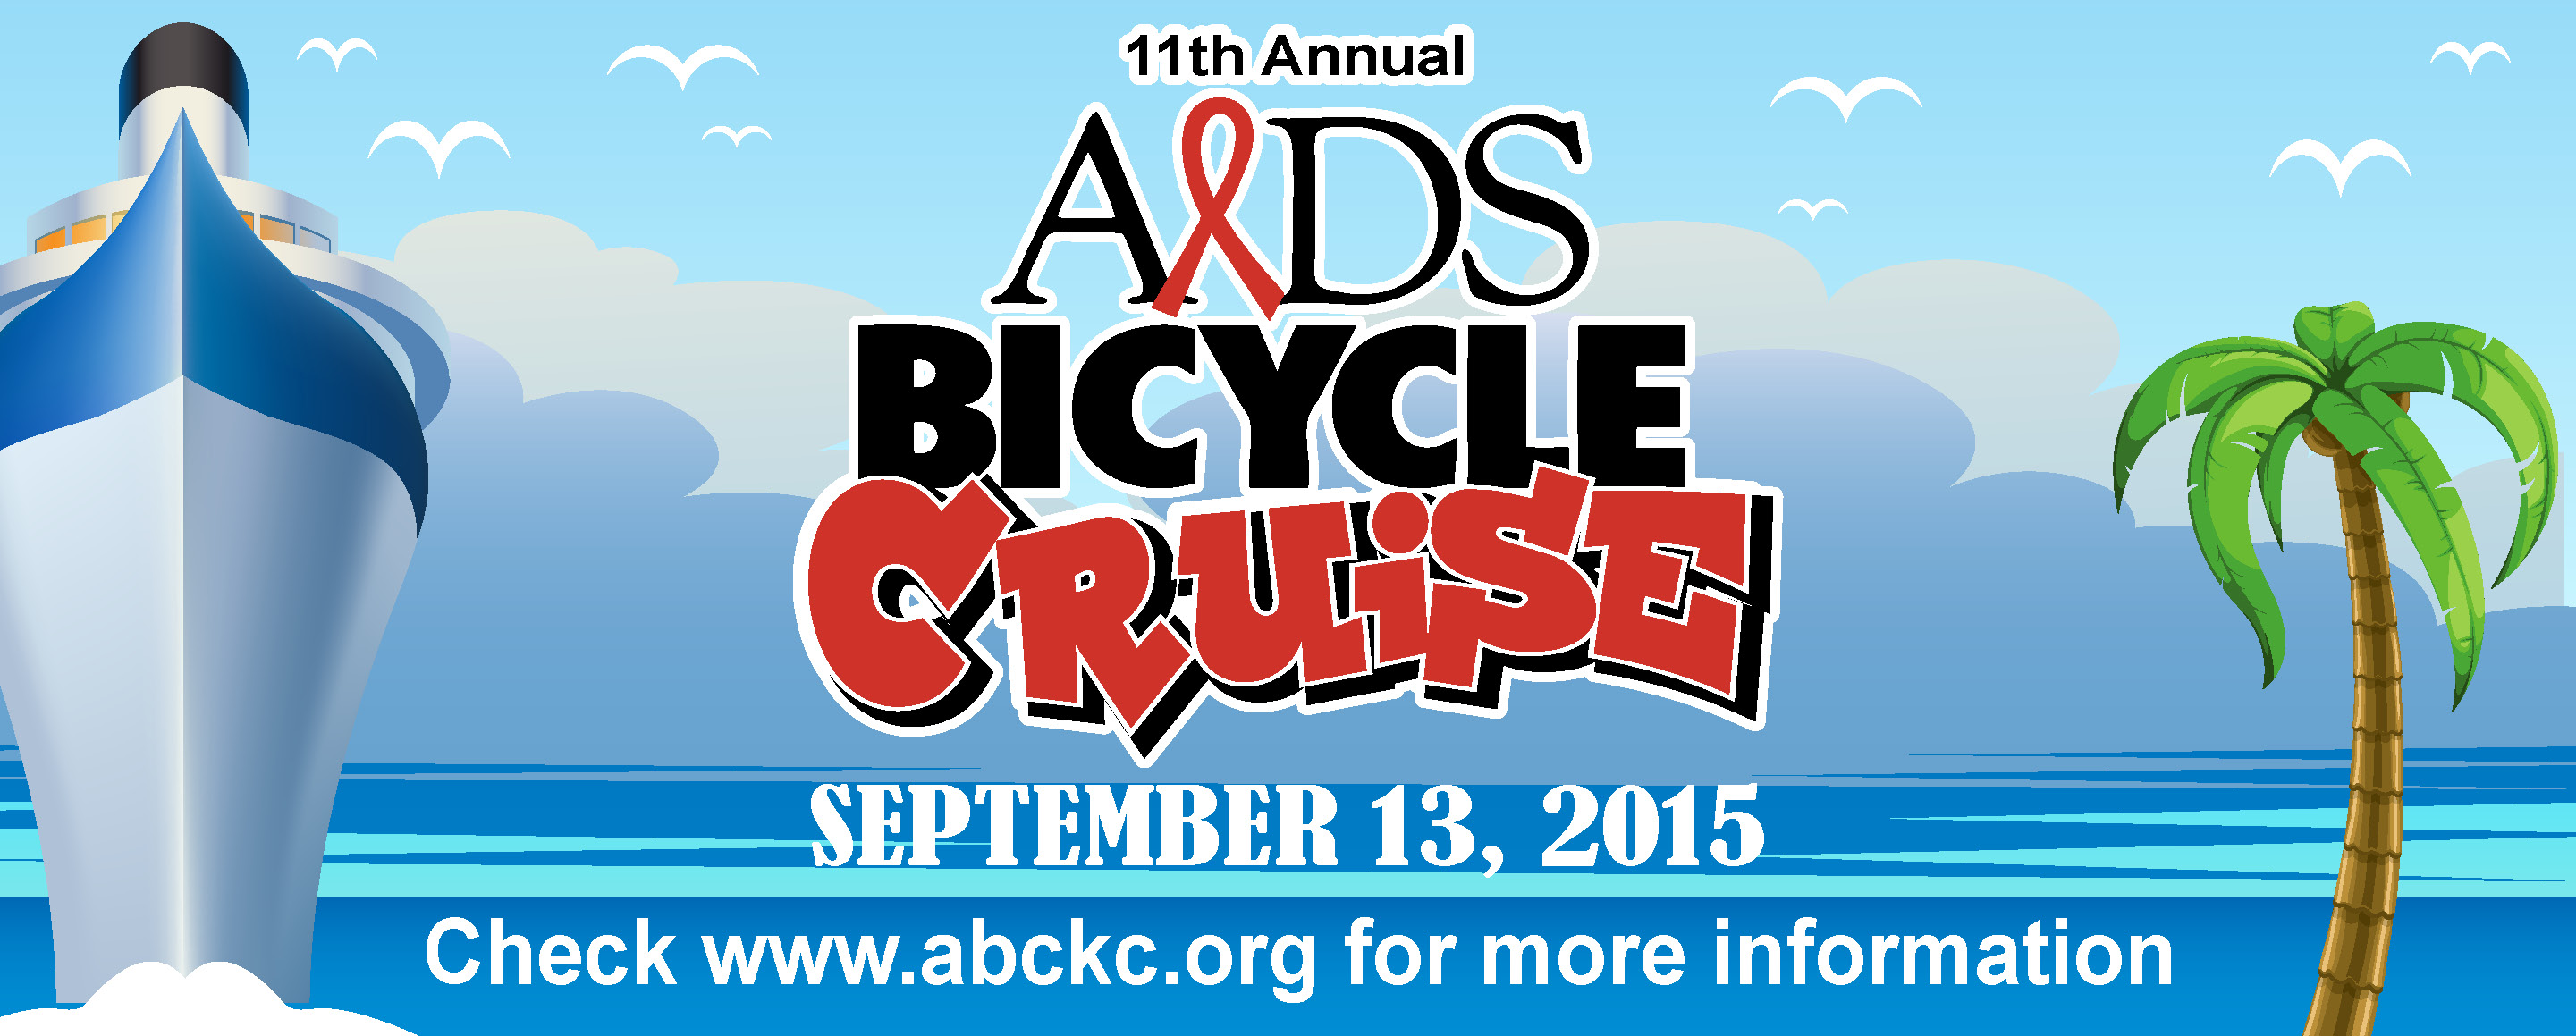 AIDS Bicycle Cruise